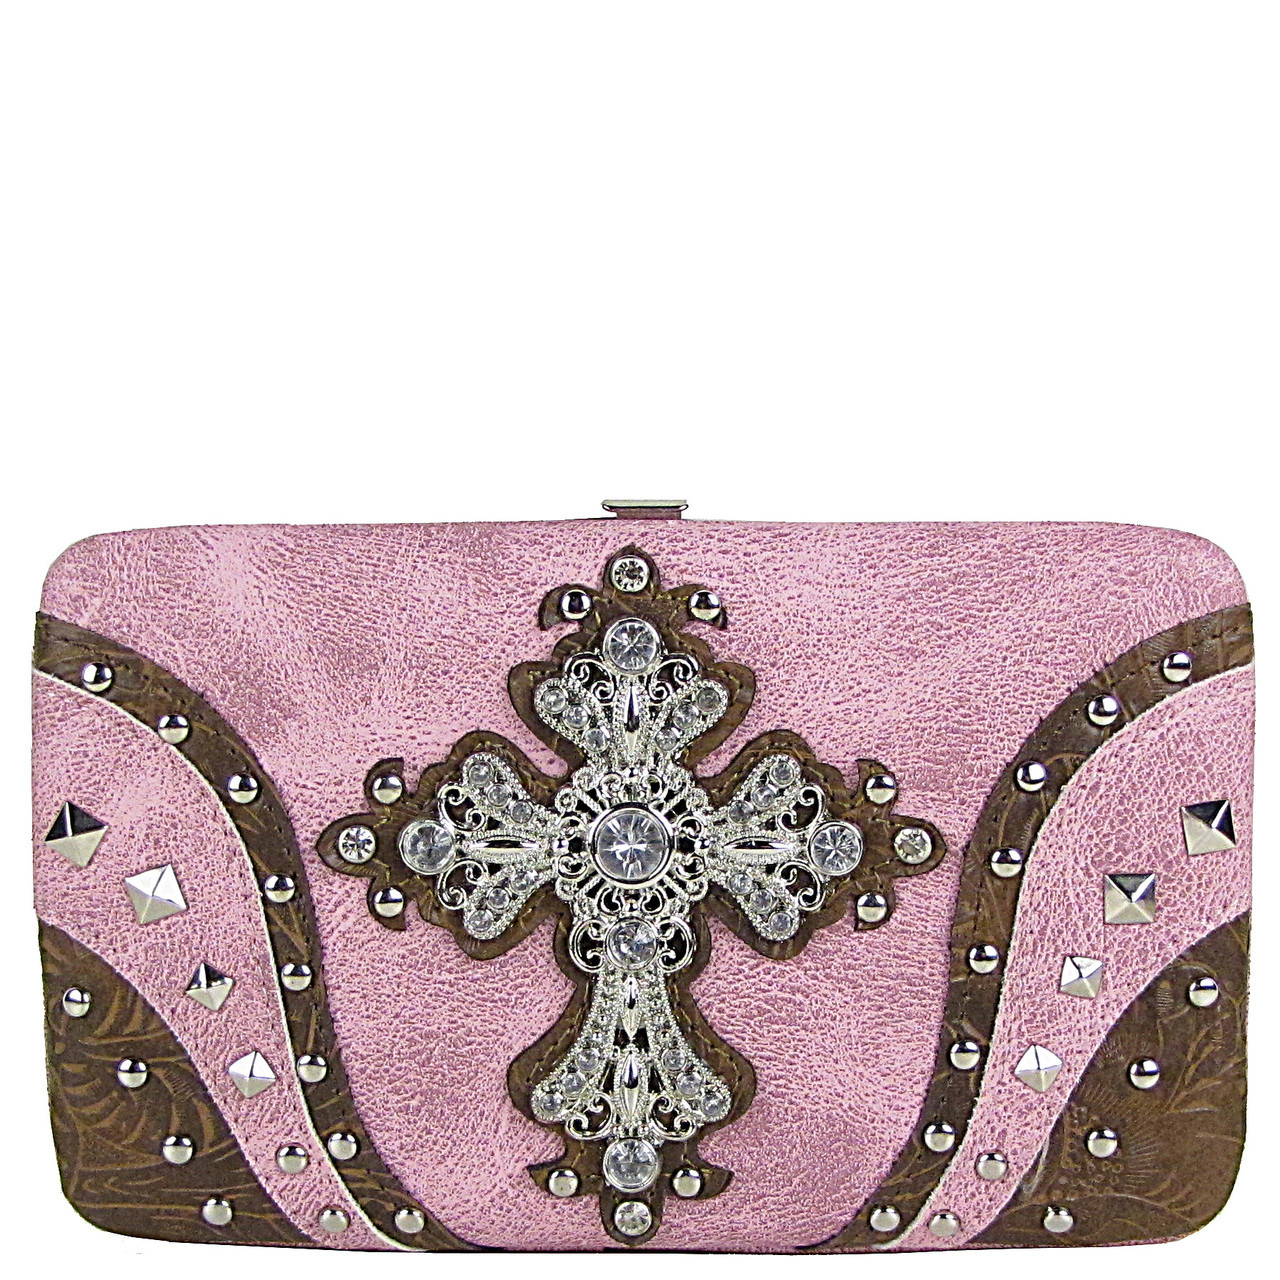 PINK STUDDED RHINESTONE TOOLED CROSS LOOK FLAT THICK WALLET FW2-04120PNK